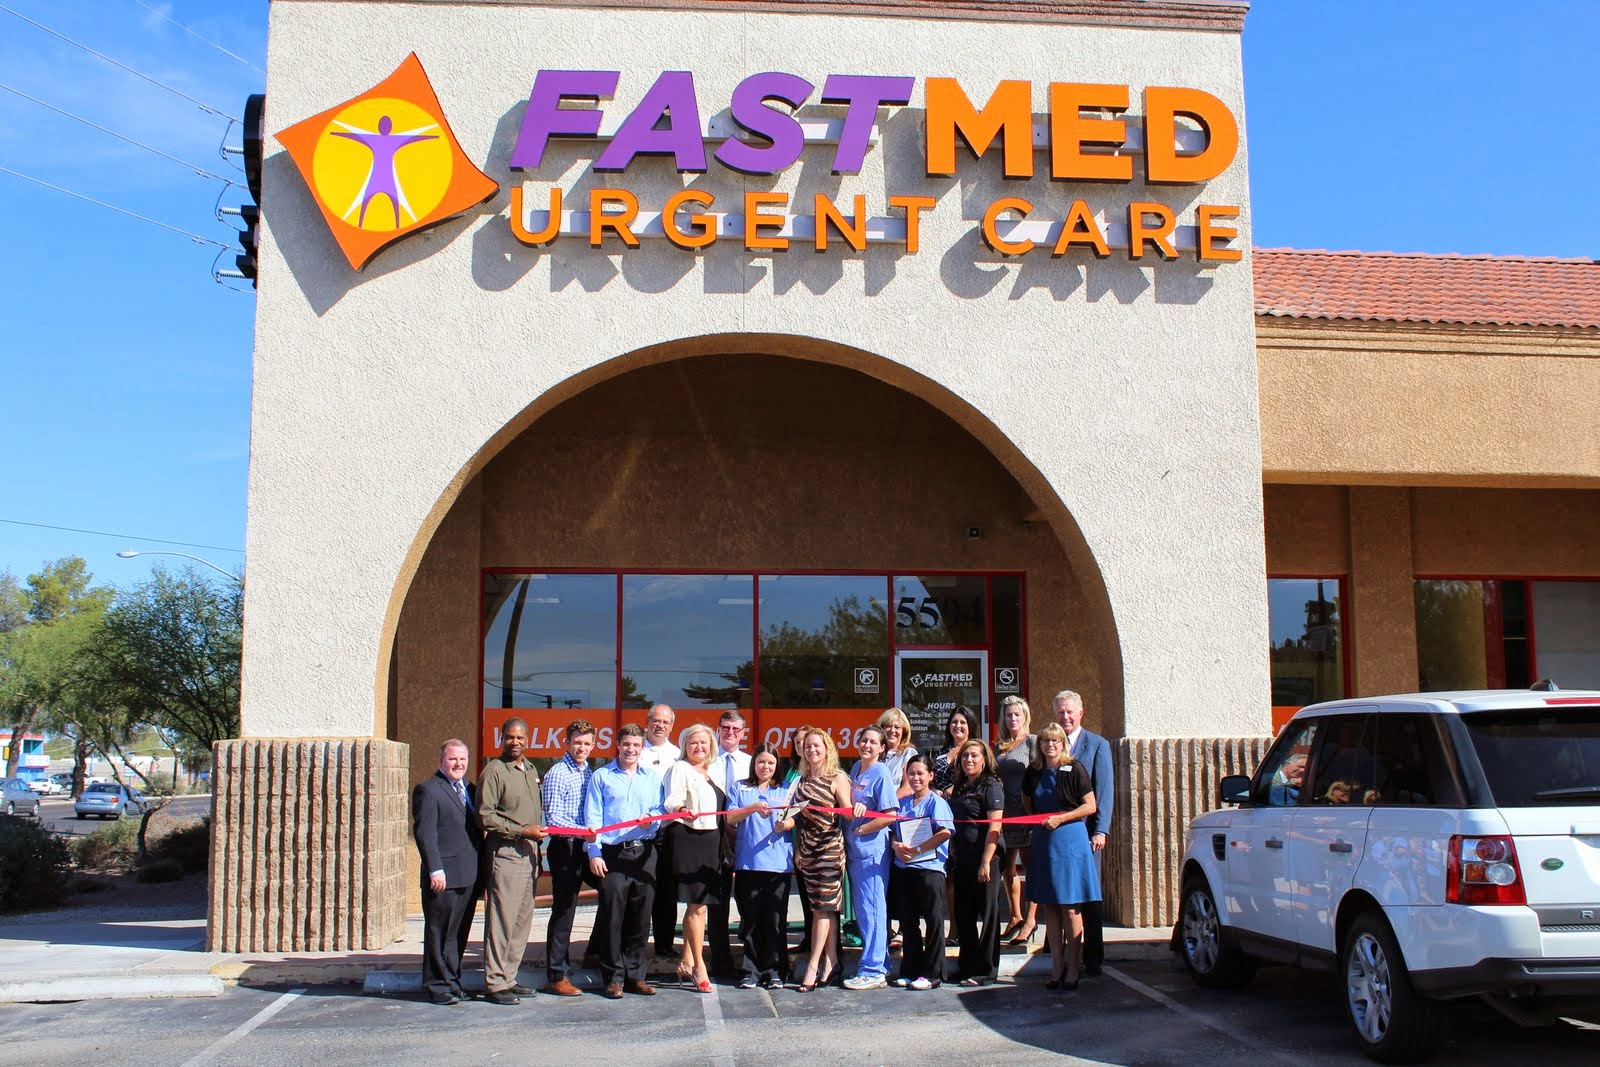 FastMed Urgent Care celebrated on Wednesday, October 23rd, the opening of its sixth clinic in the Tucson area at the corner of 22nd Street and Craycroft Road in the Country Fair Shopping Center (5594 E. 22nd Street), representing FastMed's 25th location in Arizona.